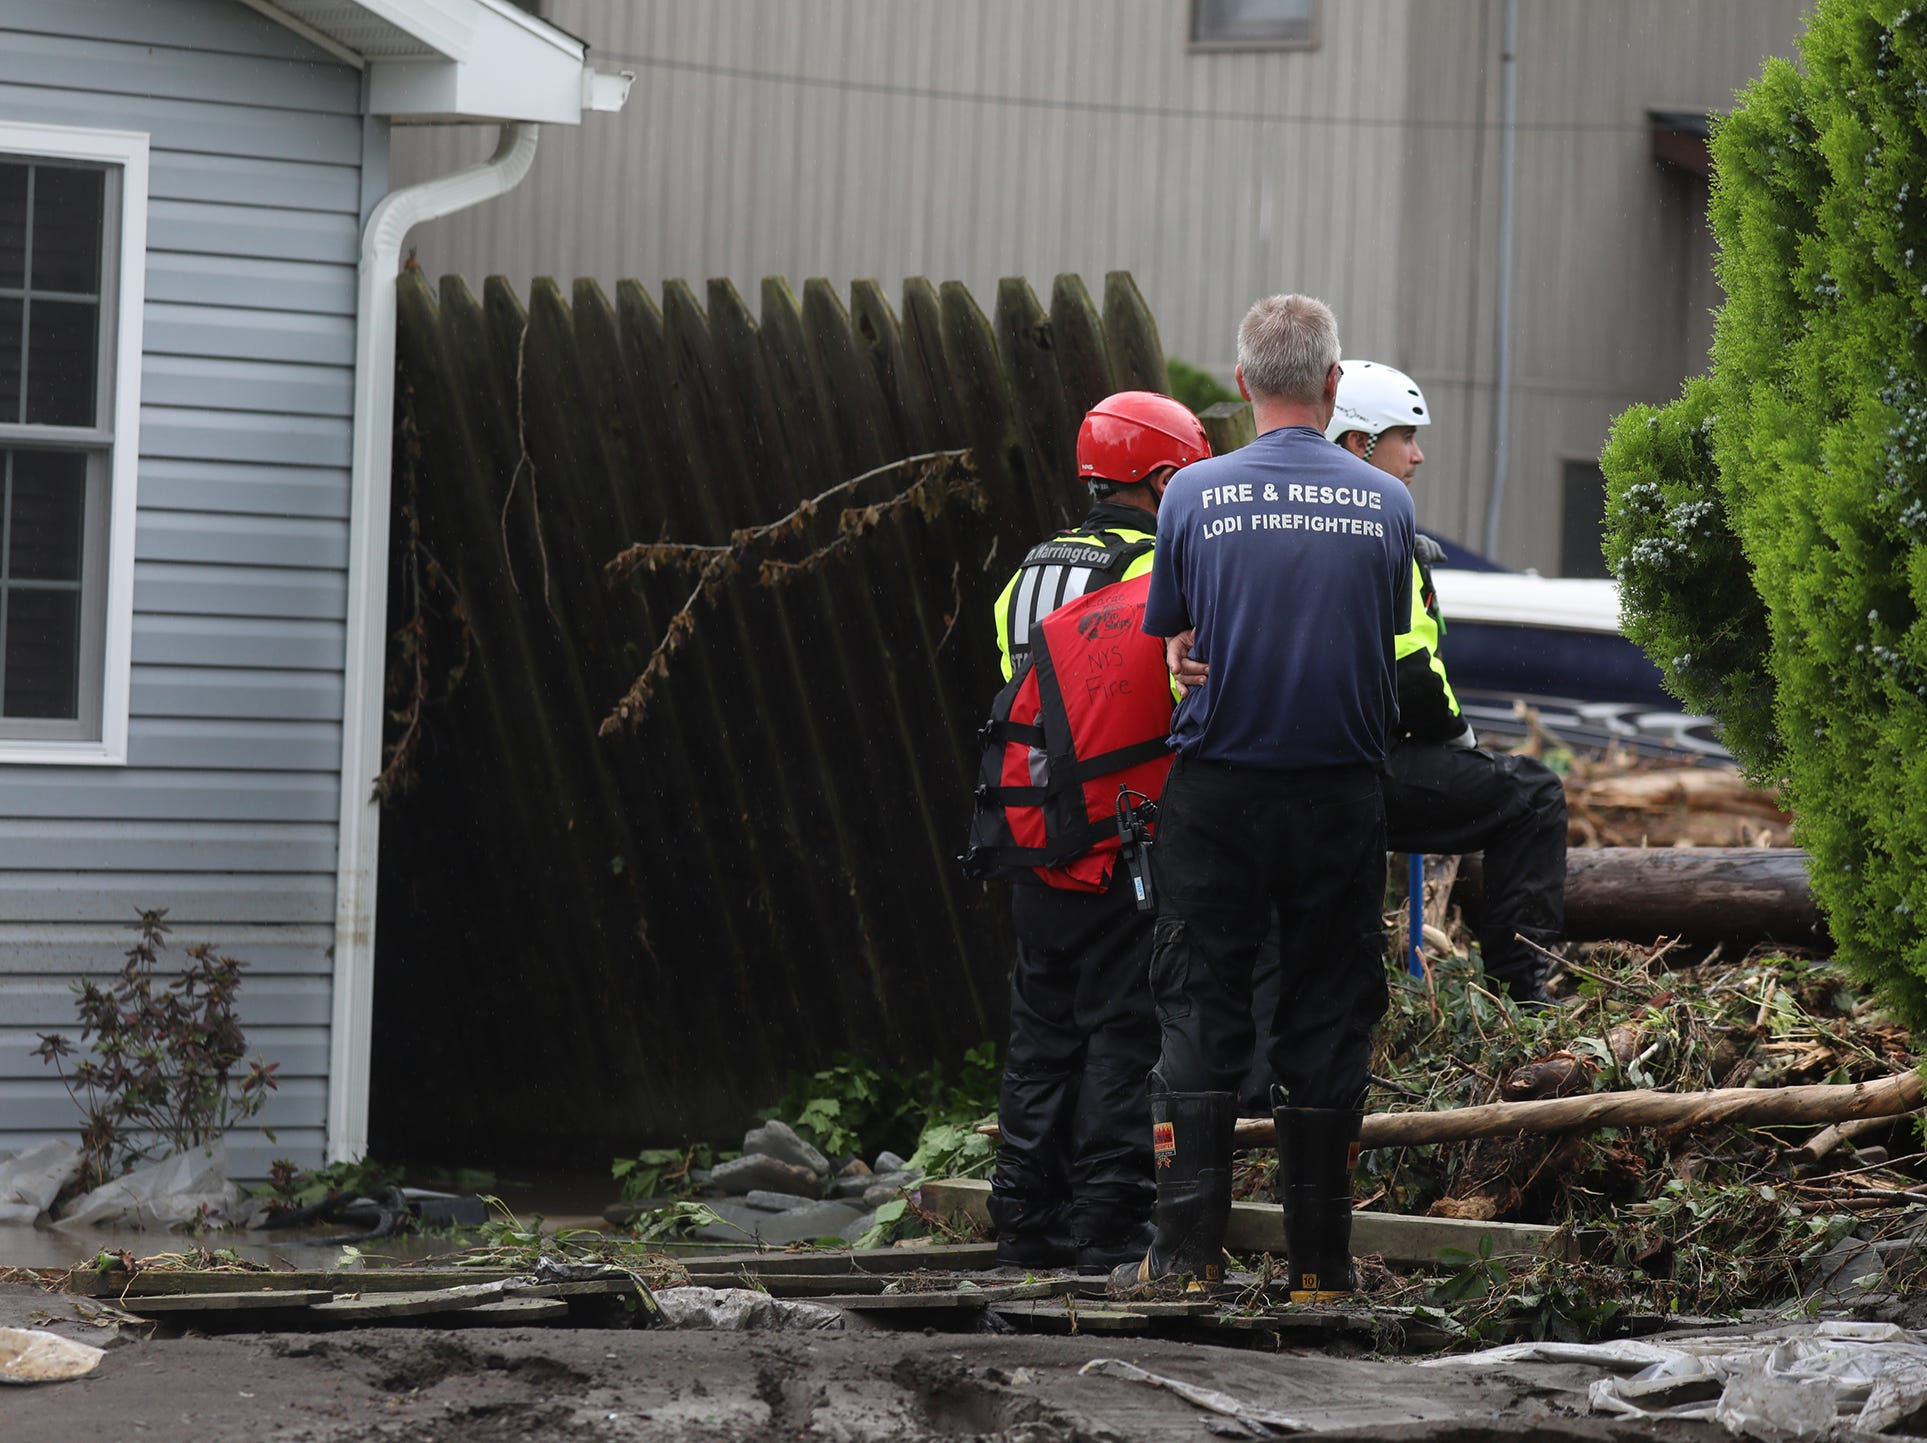 Lodi water rescue personnel go door to door in the heaviest effect area after heavy rain caused flooding and washing away at Lodi Point, New York on Tuesday, August 14, 2018.